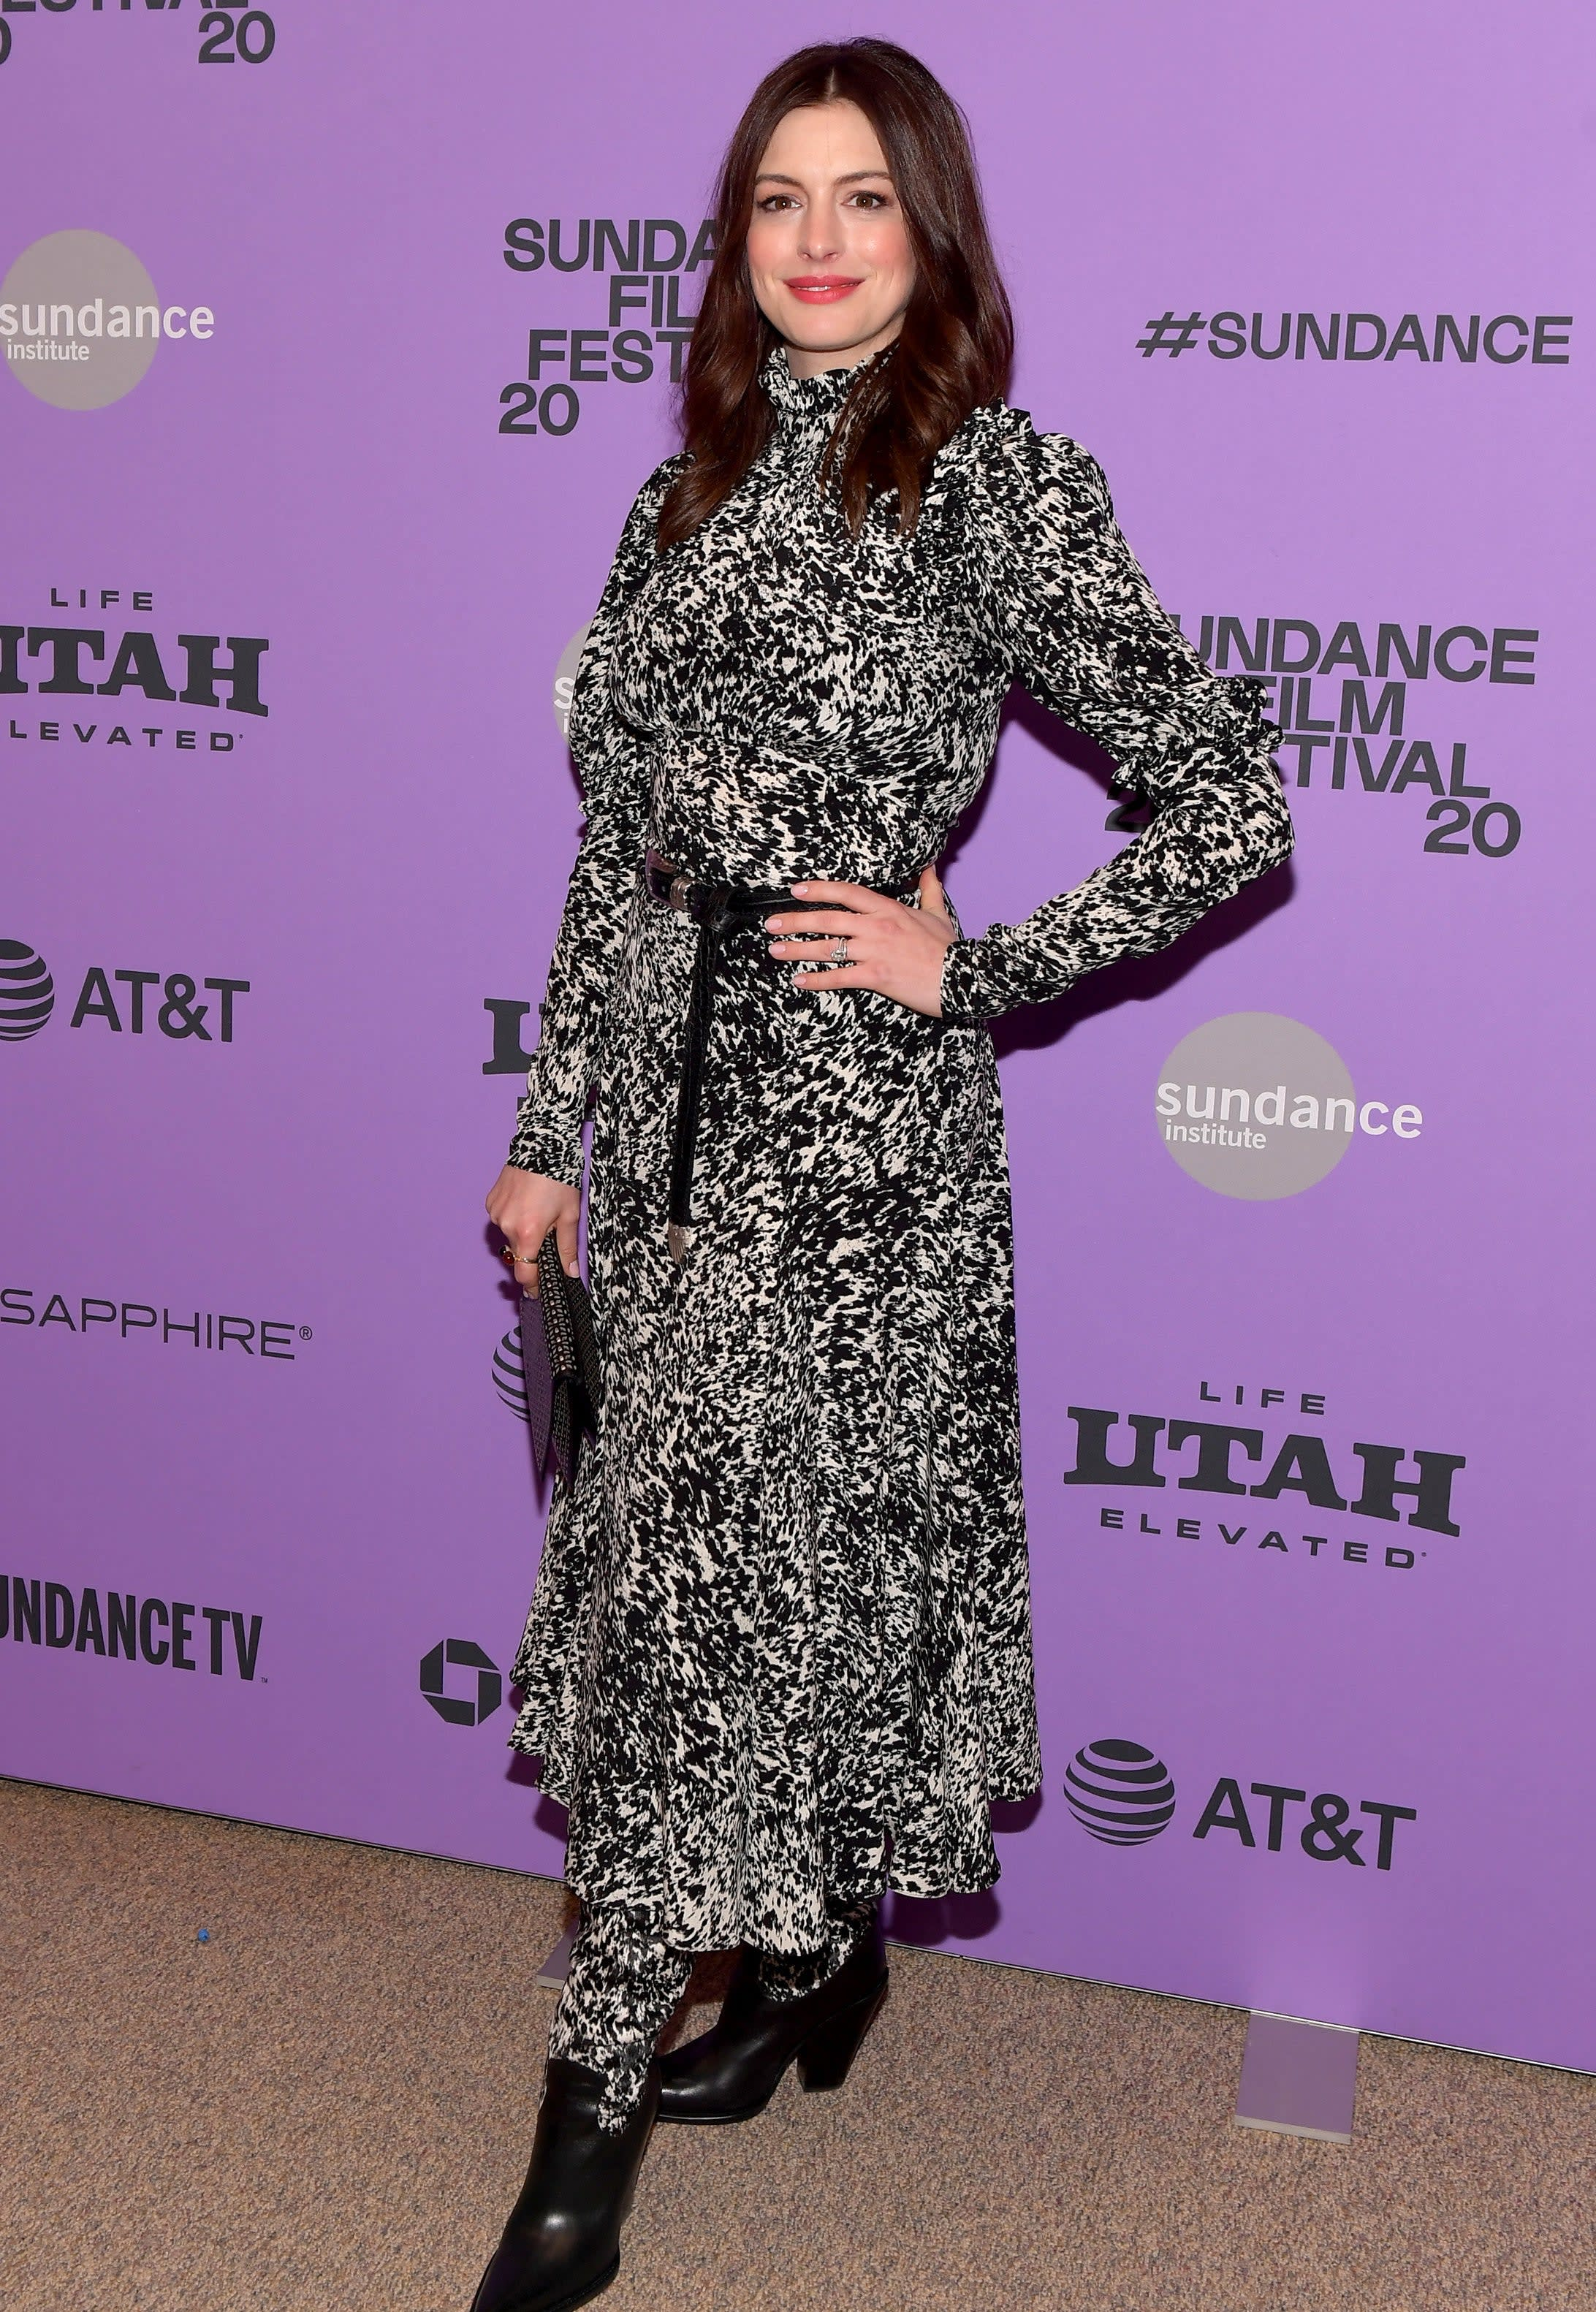 Anne wears a patterned long sleeve dress with booties and a belt at her waist.